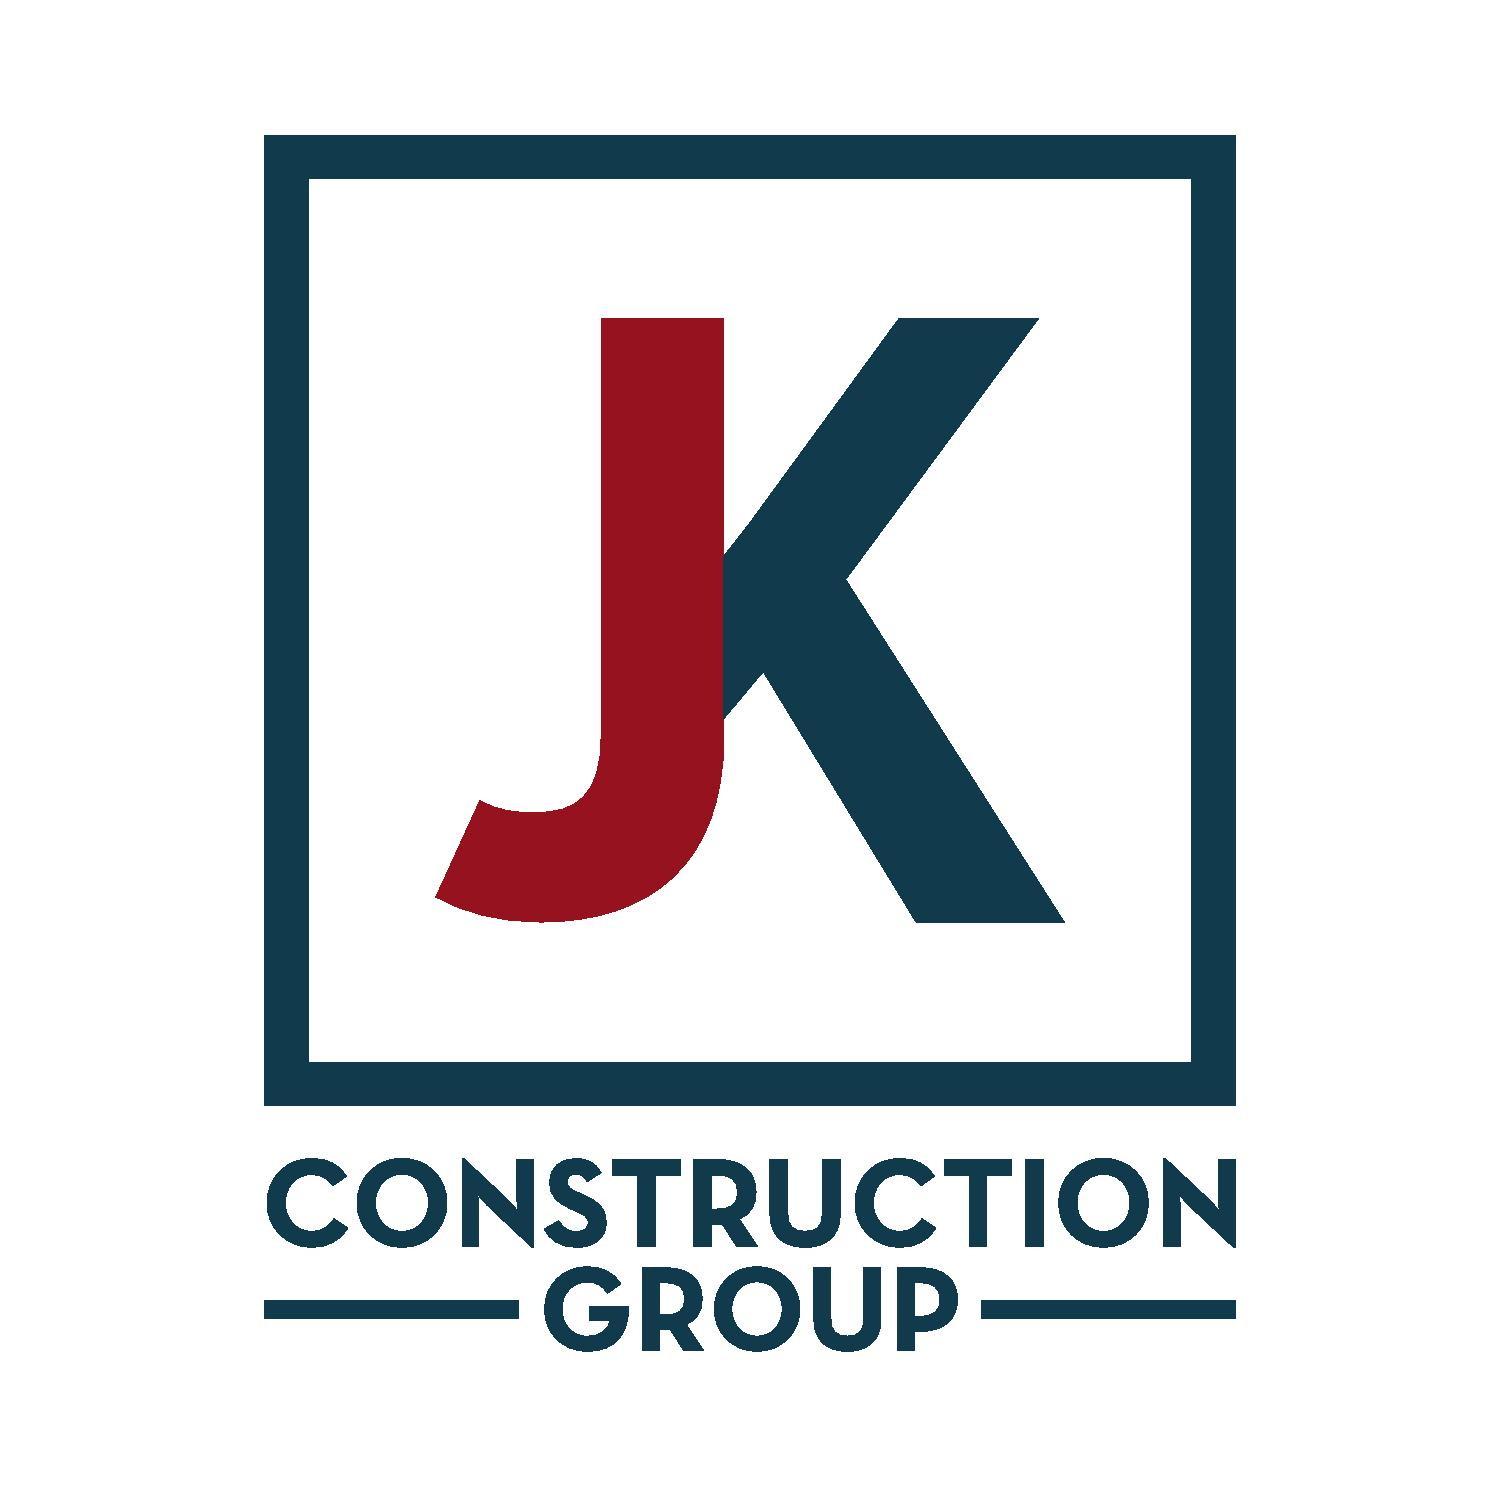 JK Construction Group